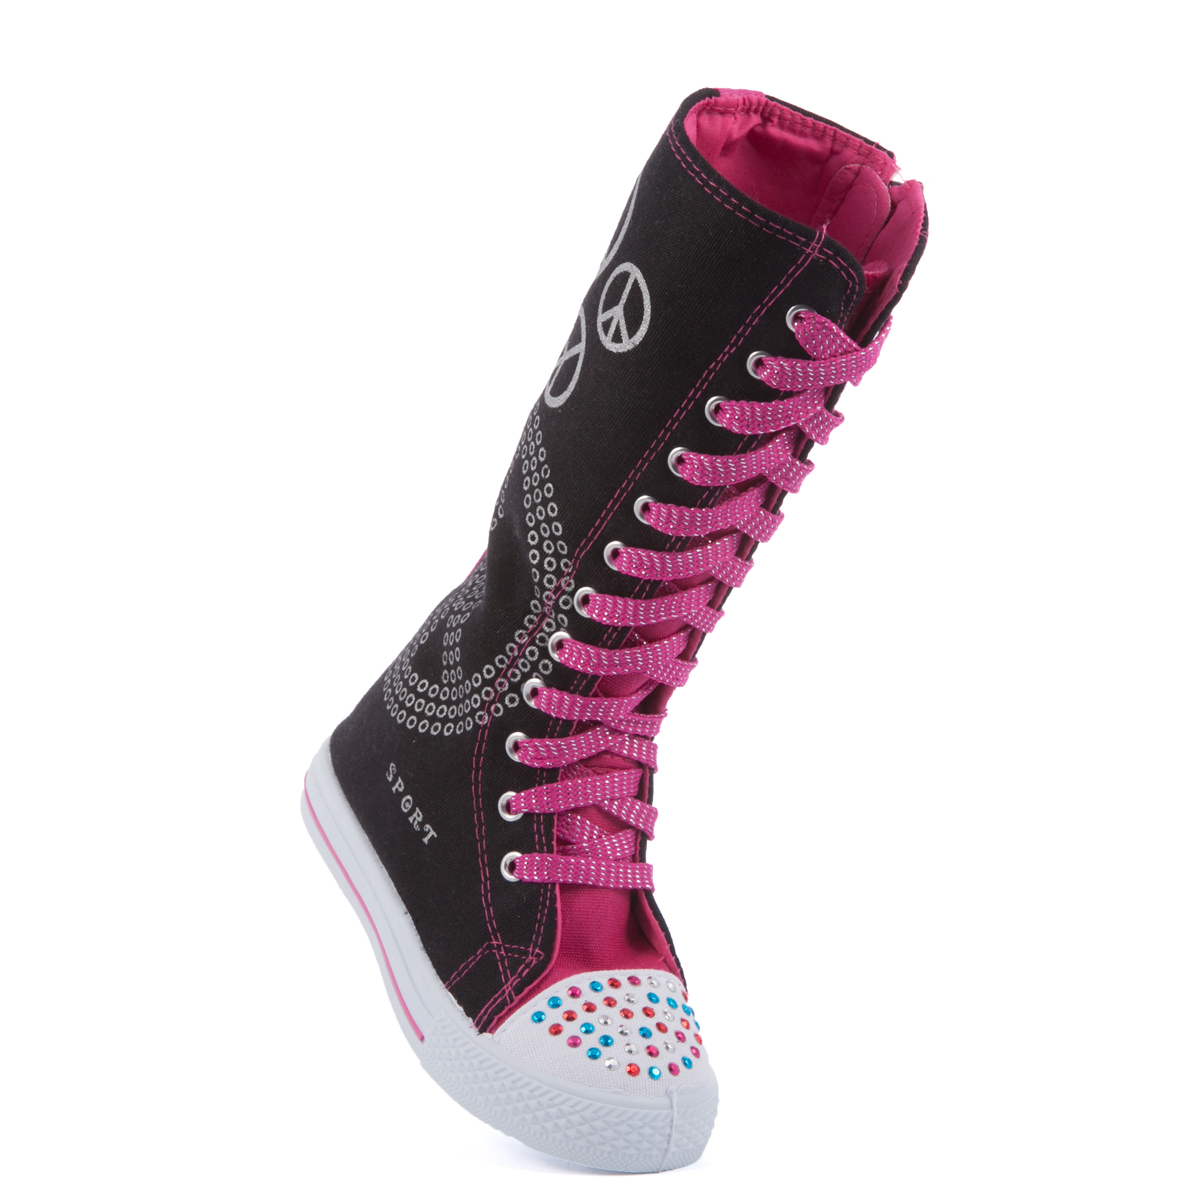 Free shipping BOTH ways on girls knee high sneakers, from our vast selection of styles. Fast delivery, and 24/7/ real-person service with a smile. Click or call